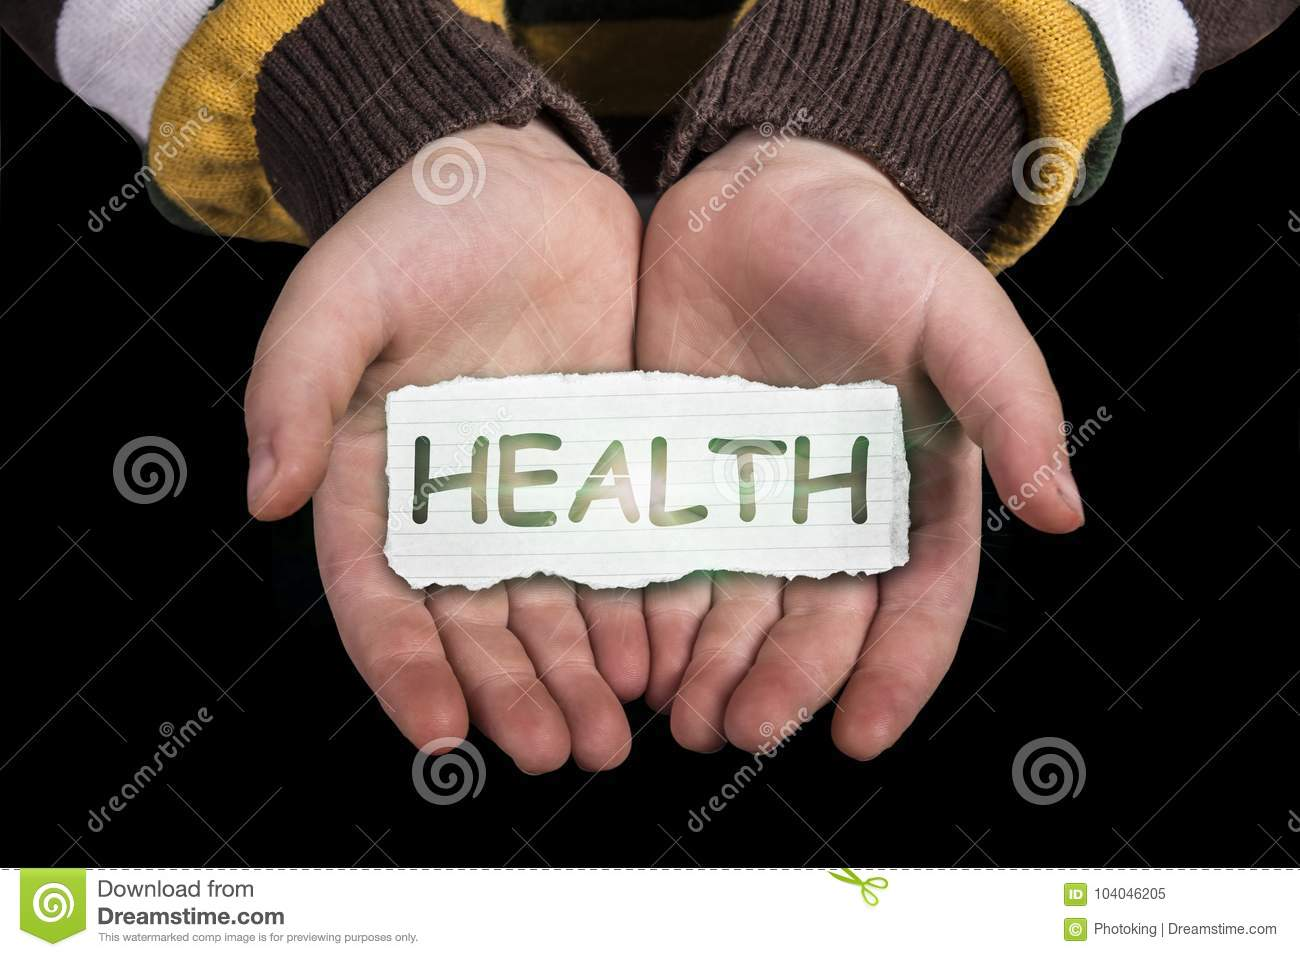 Health text on hand